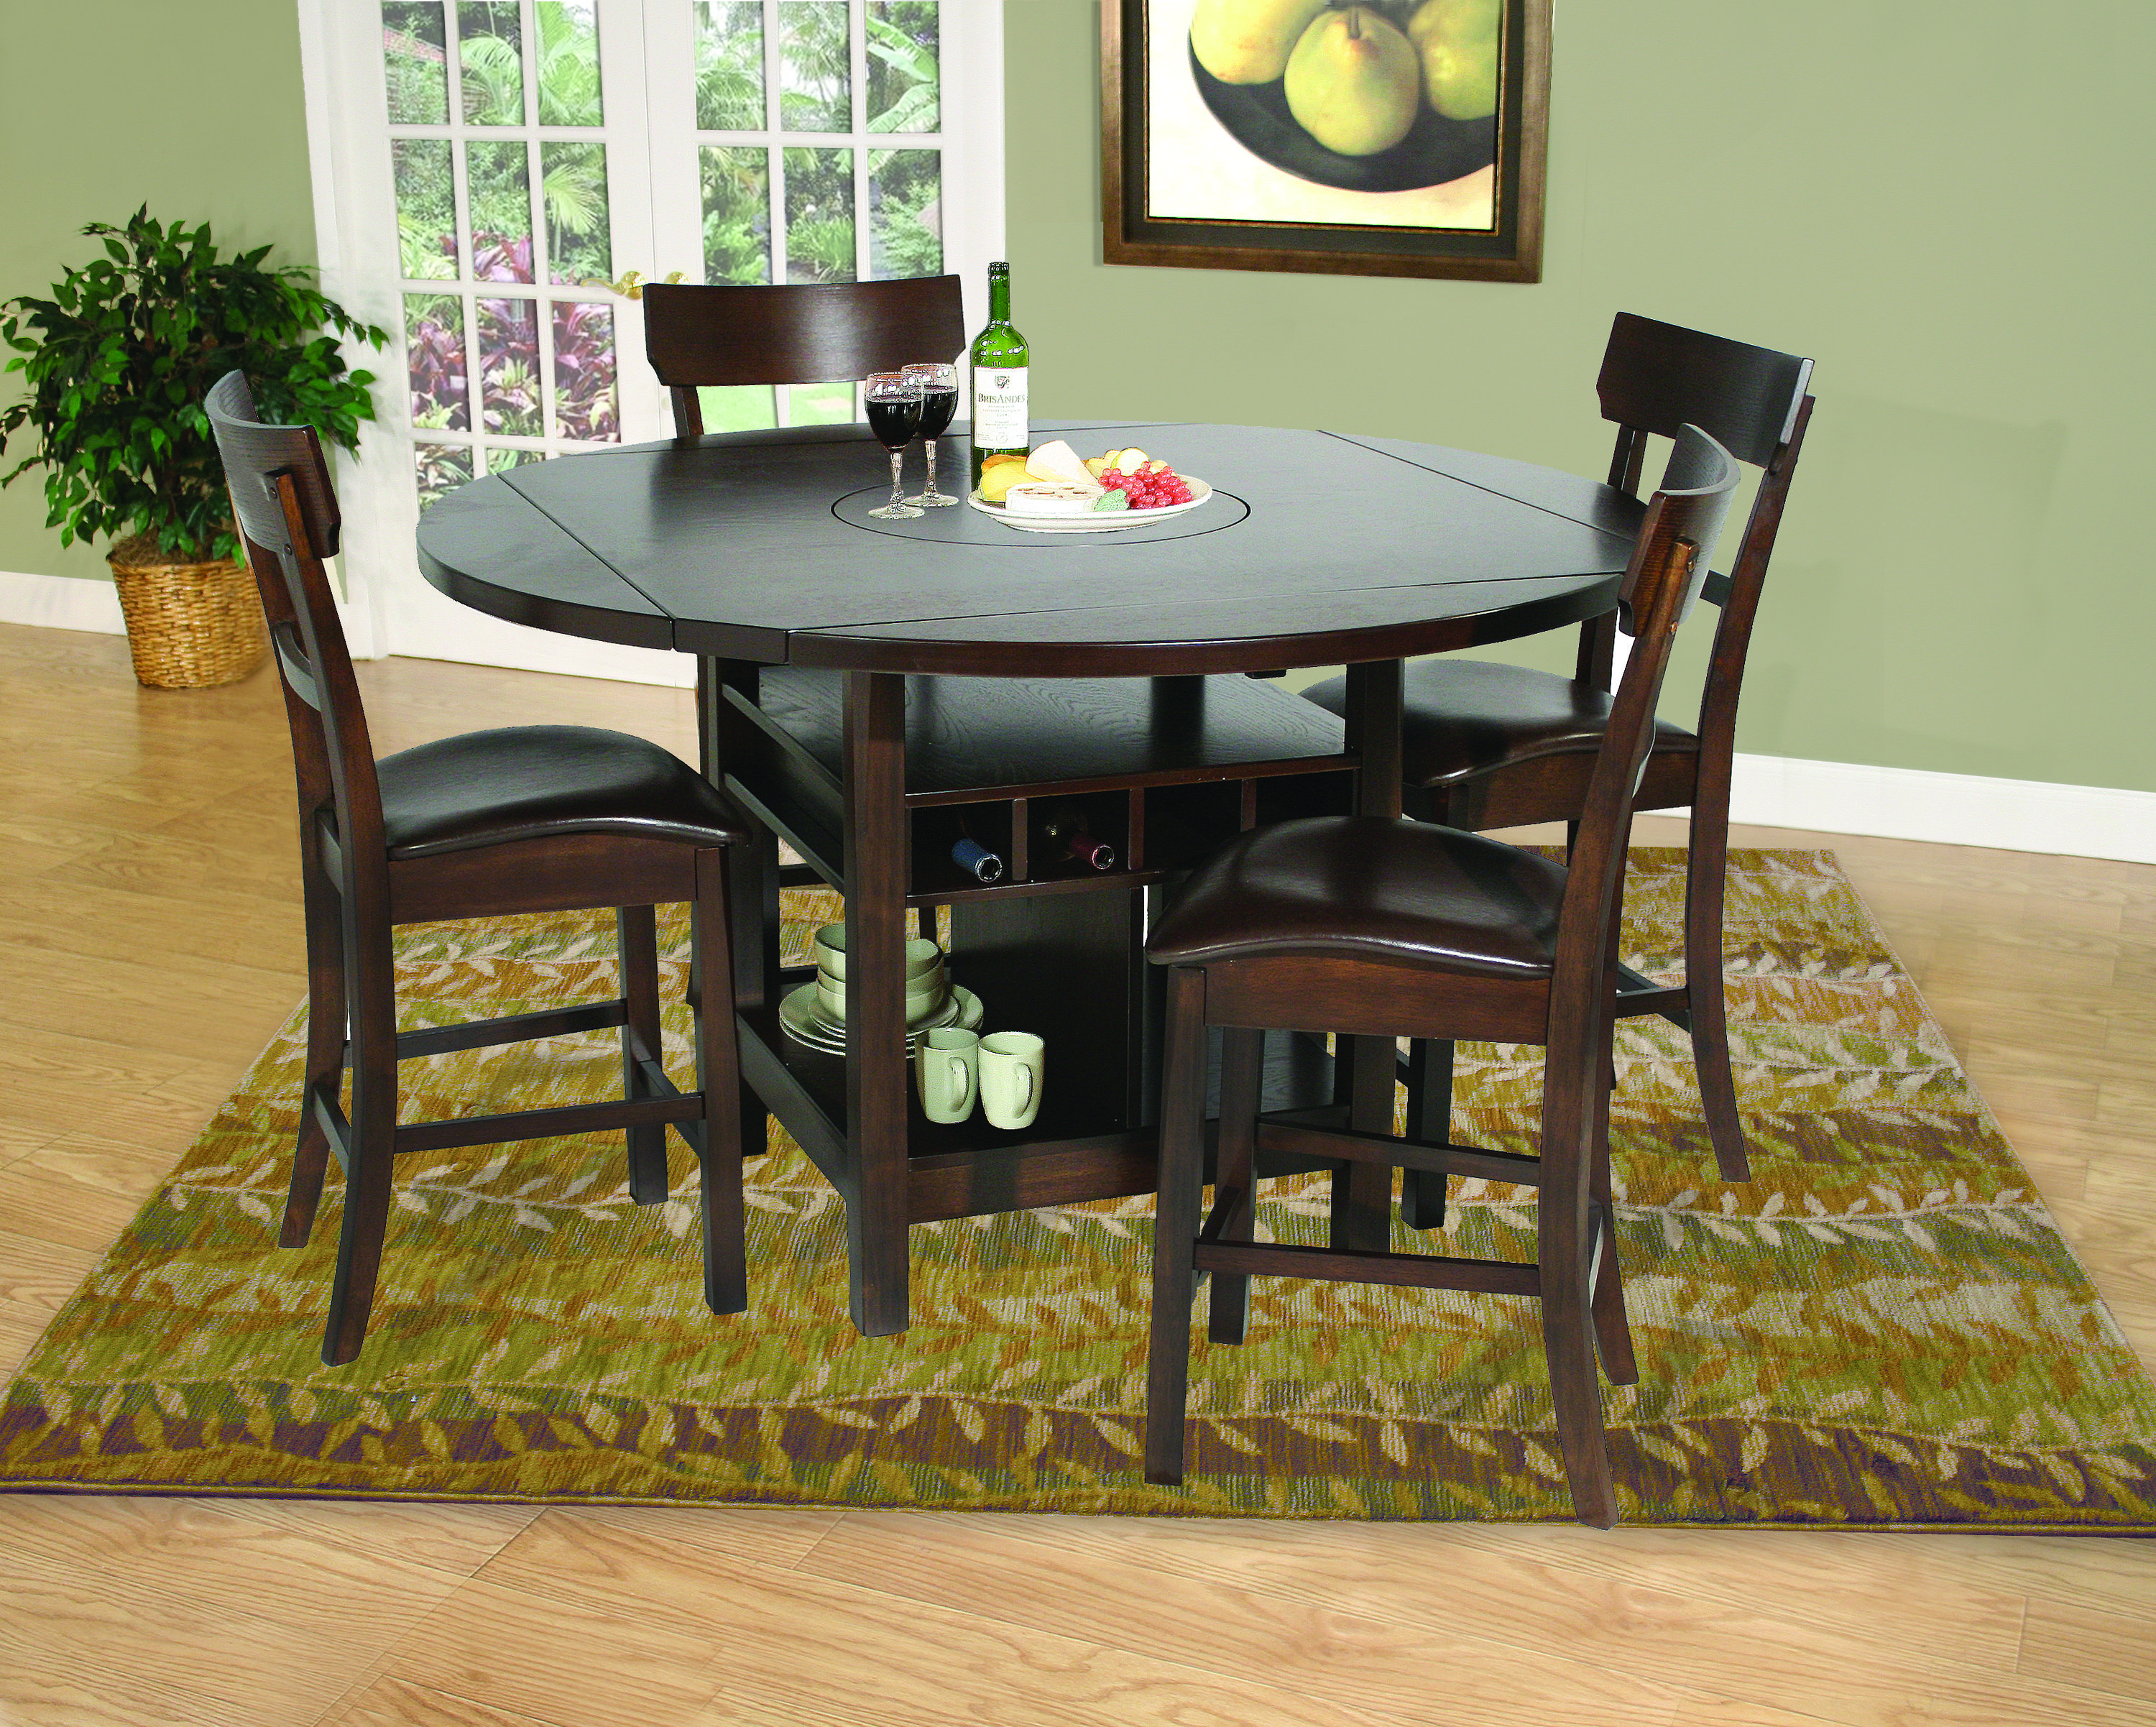 House The Samantha Pub Features A Perimeter Drop Leaf Table Top With Built In Lazy Susan